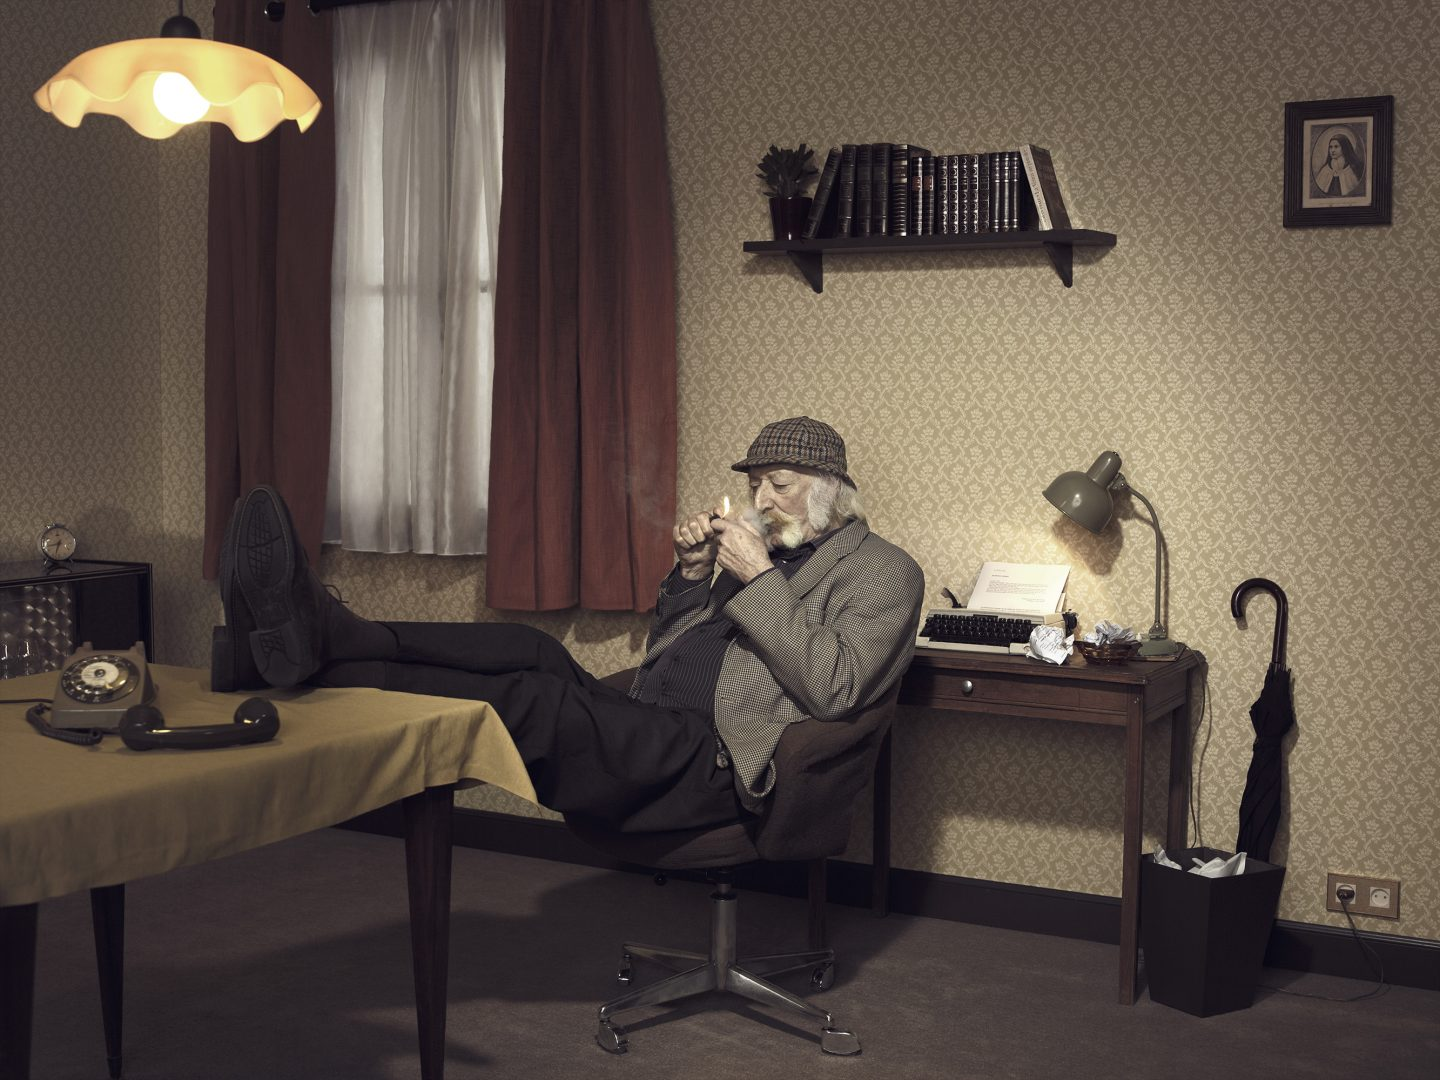 Old man with Sherlock Holmes lock lights pipe in room 42 by Stefan Rappo